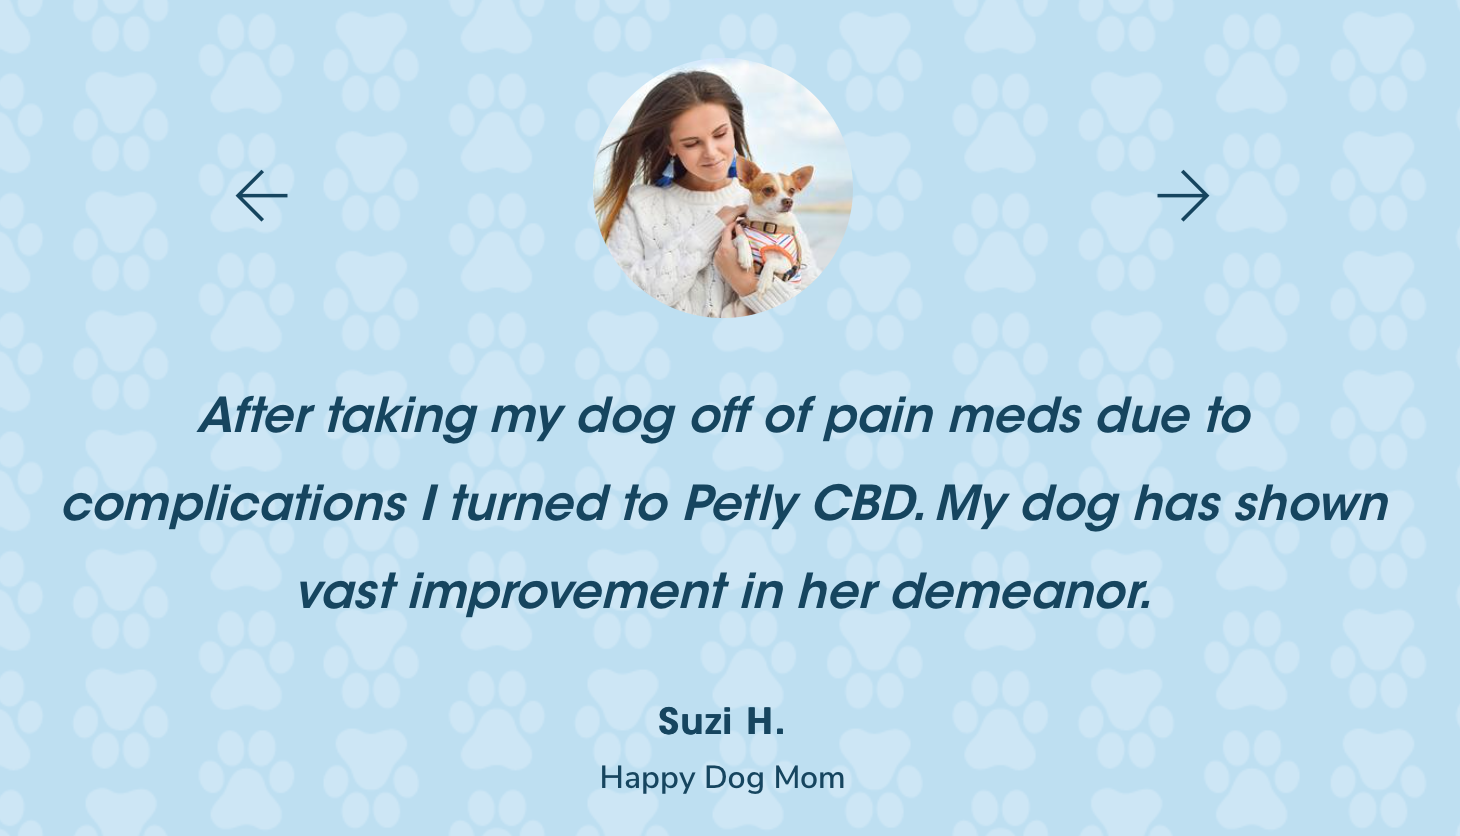 Endorsement for PETLYcbd From Suzi